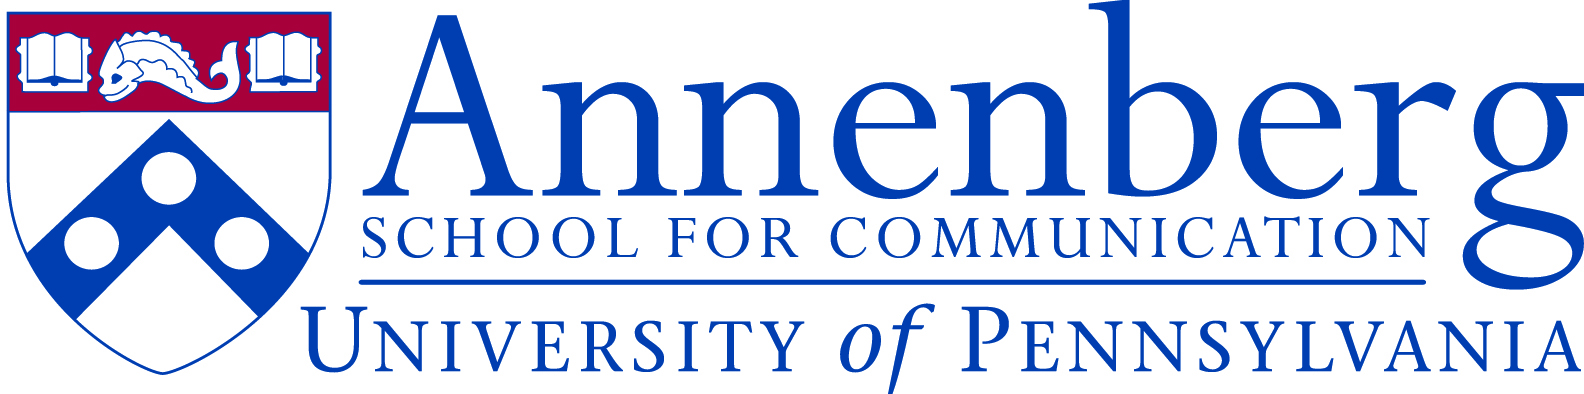 Annenberg School for Communication, University of Pennsylvania logo